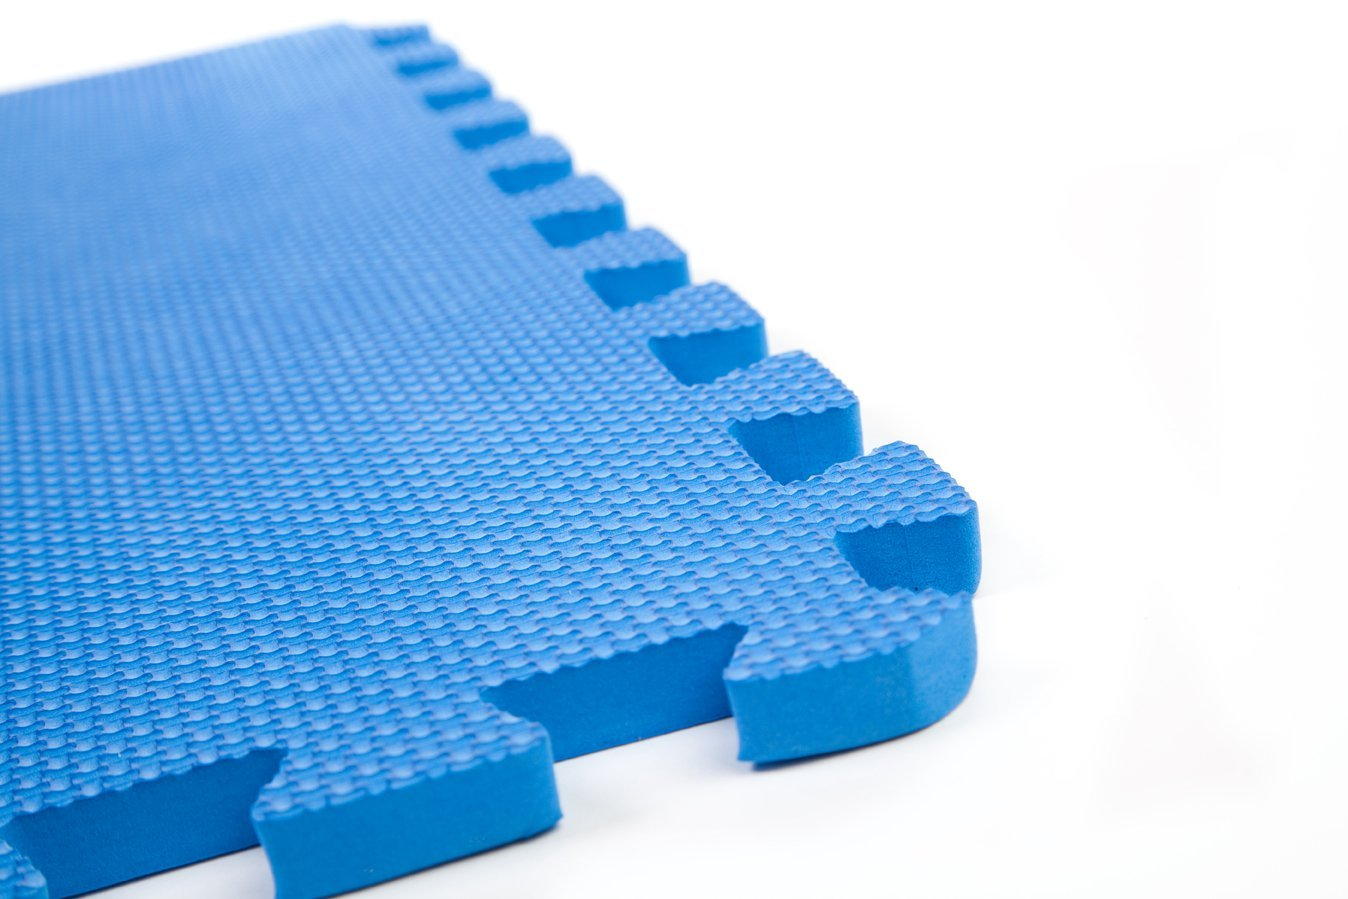 60 X 60 Cm Blue Interlocking Eva Soft Foam Exercise Floor